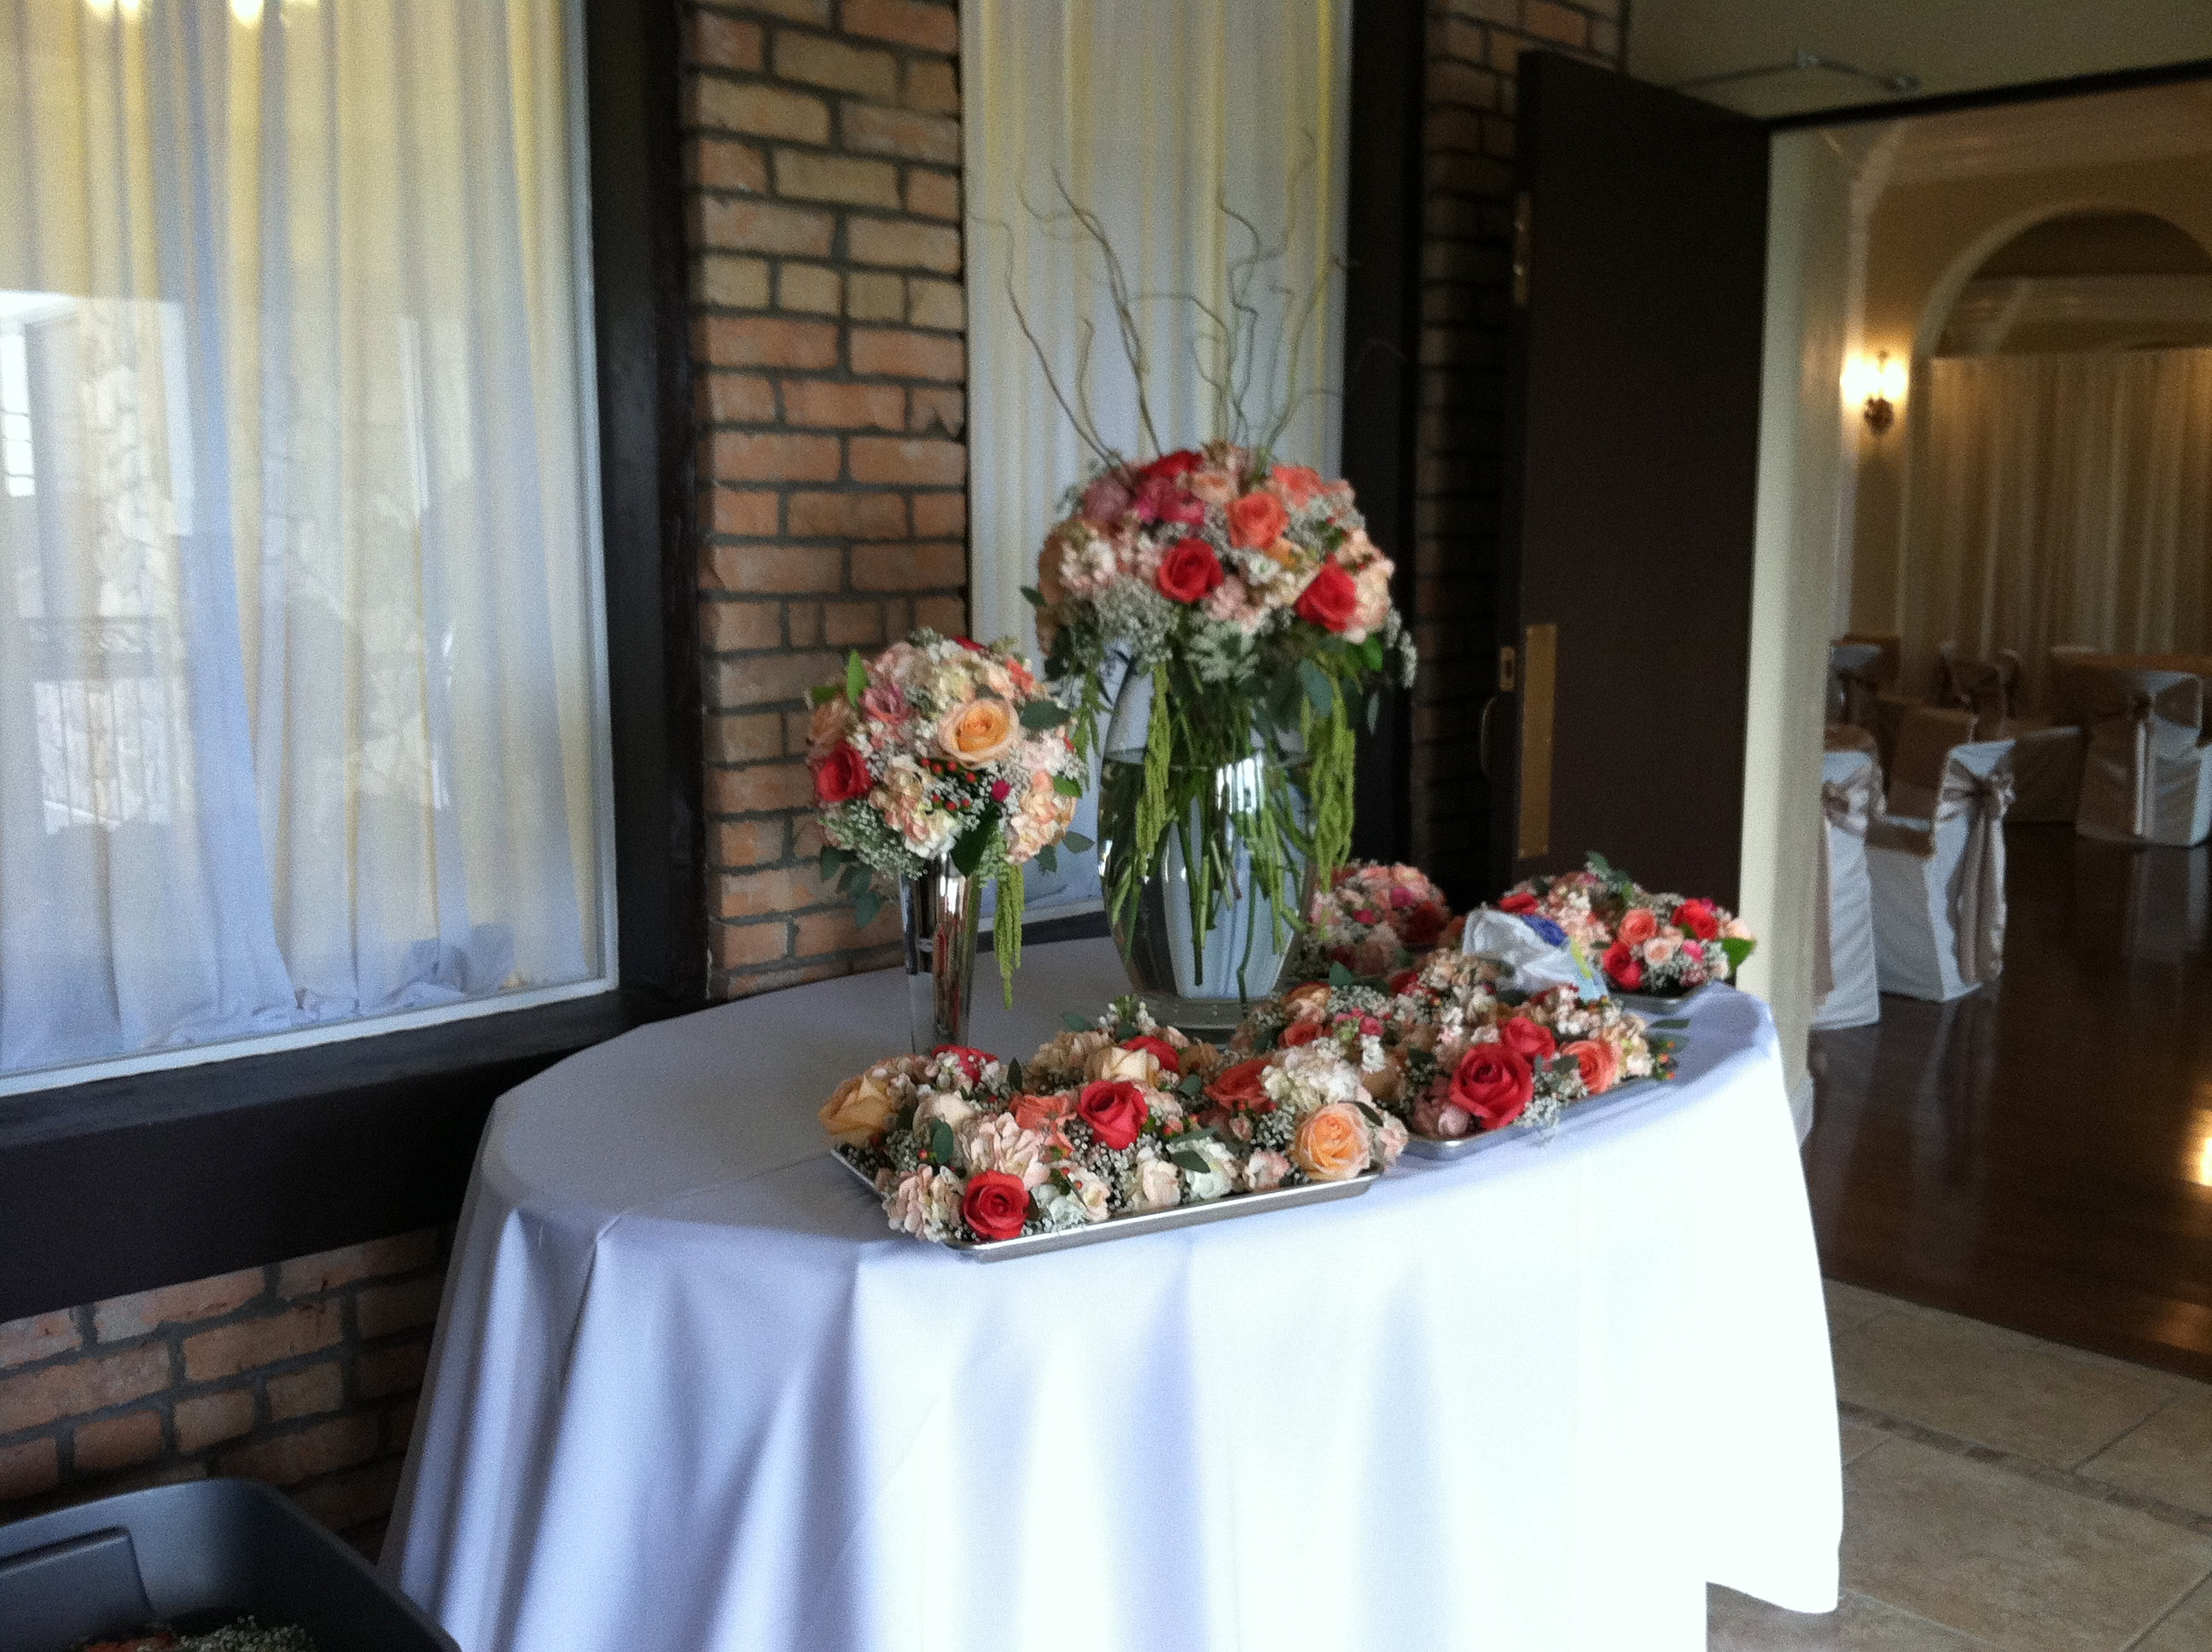 Wedding Flowers Utah County : Stone gate weddings utah county receptions